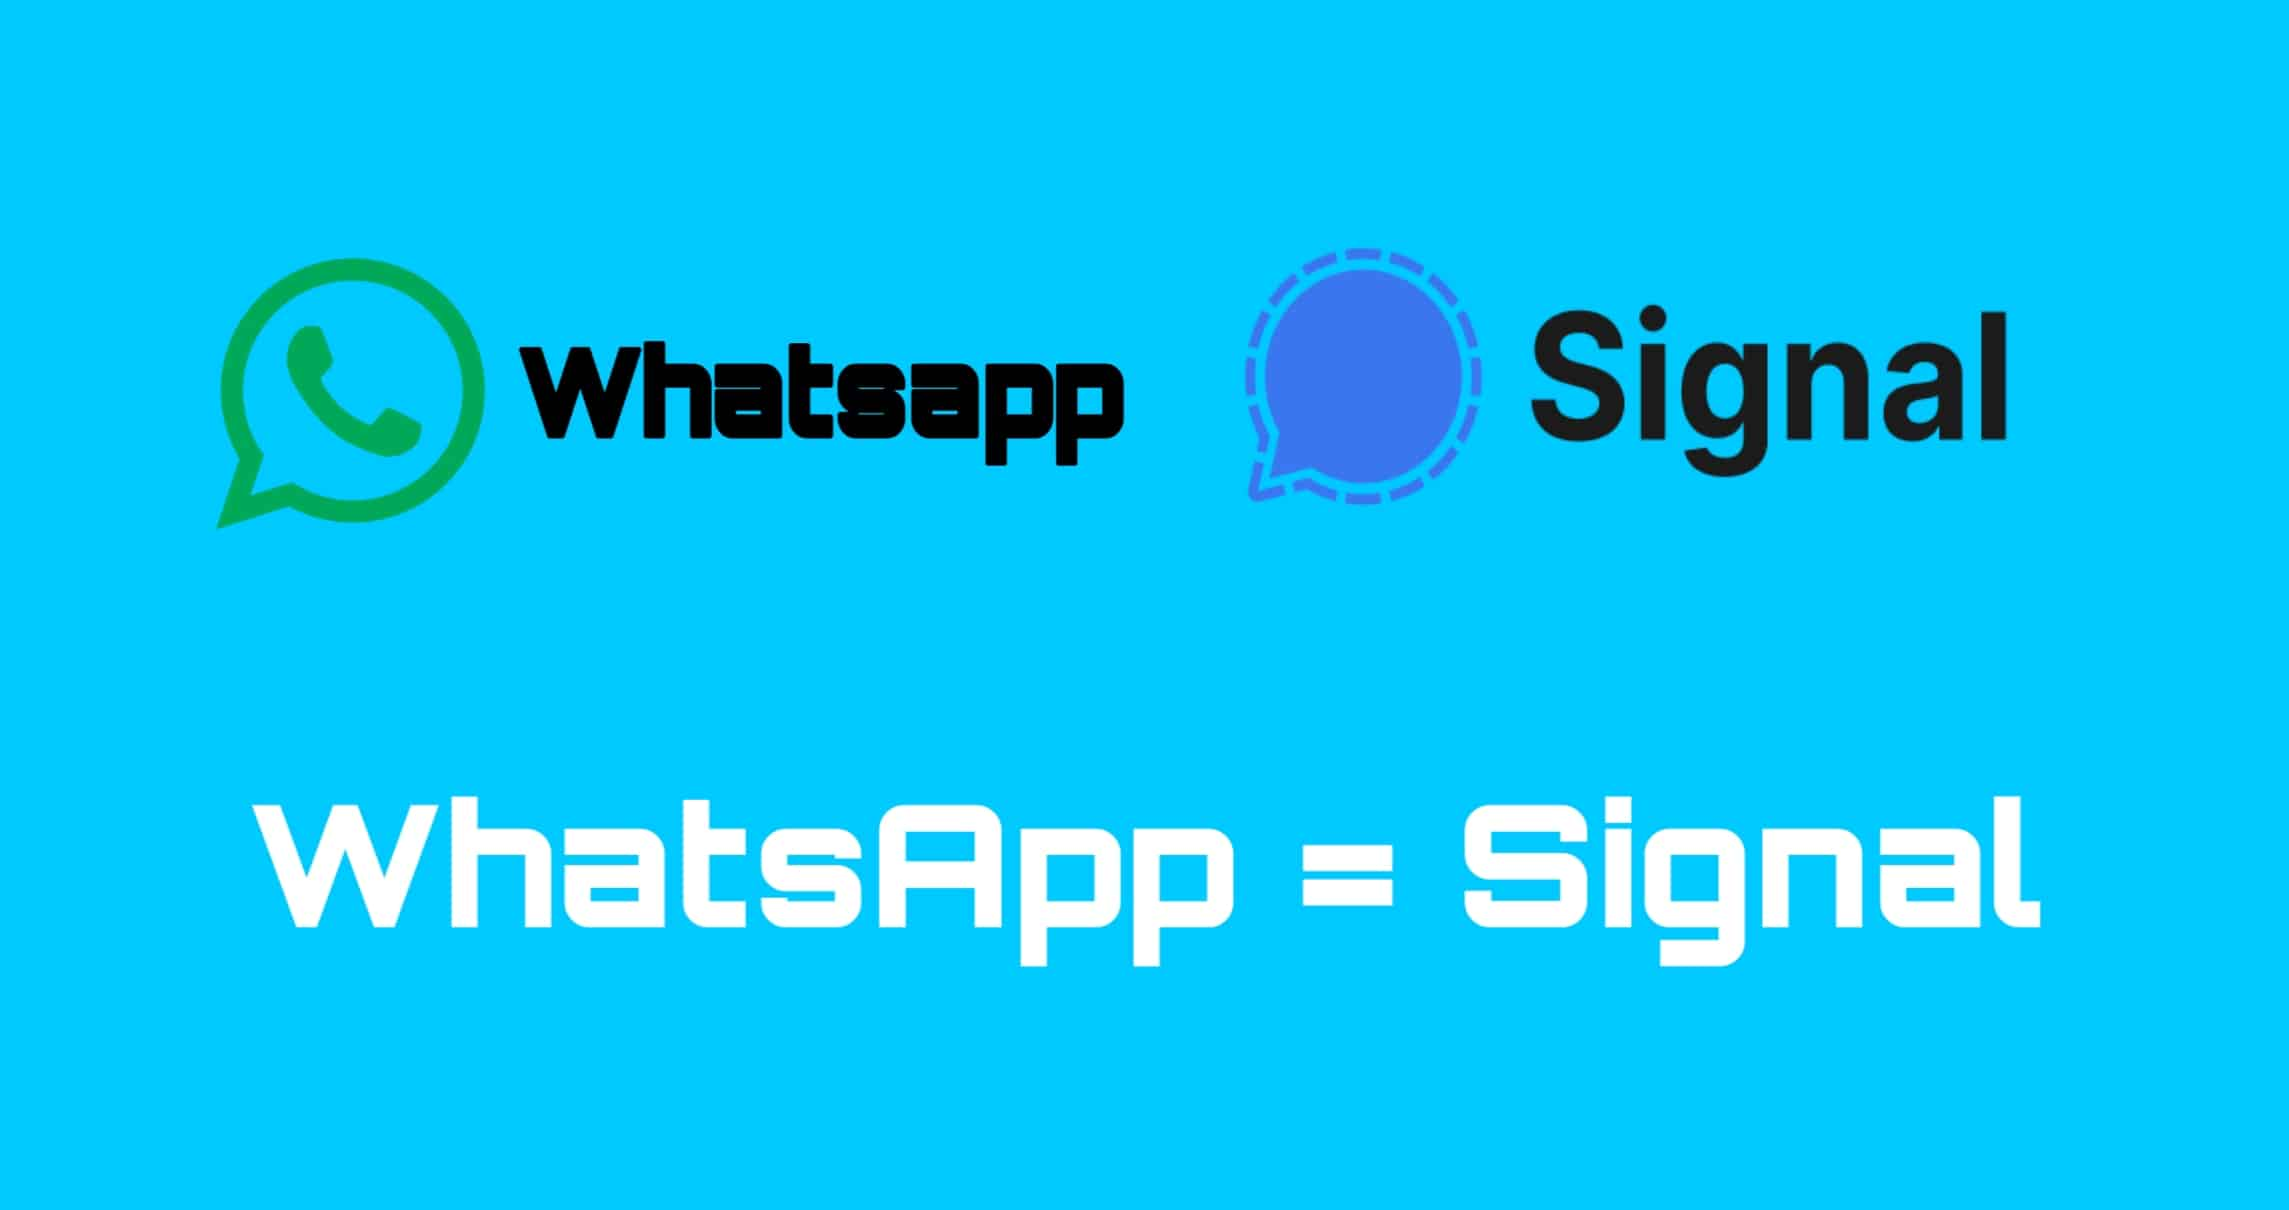 WhatsApp Messenger is equals to Signal App